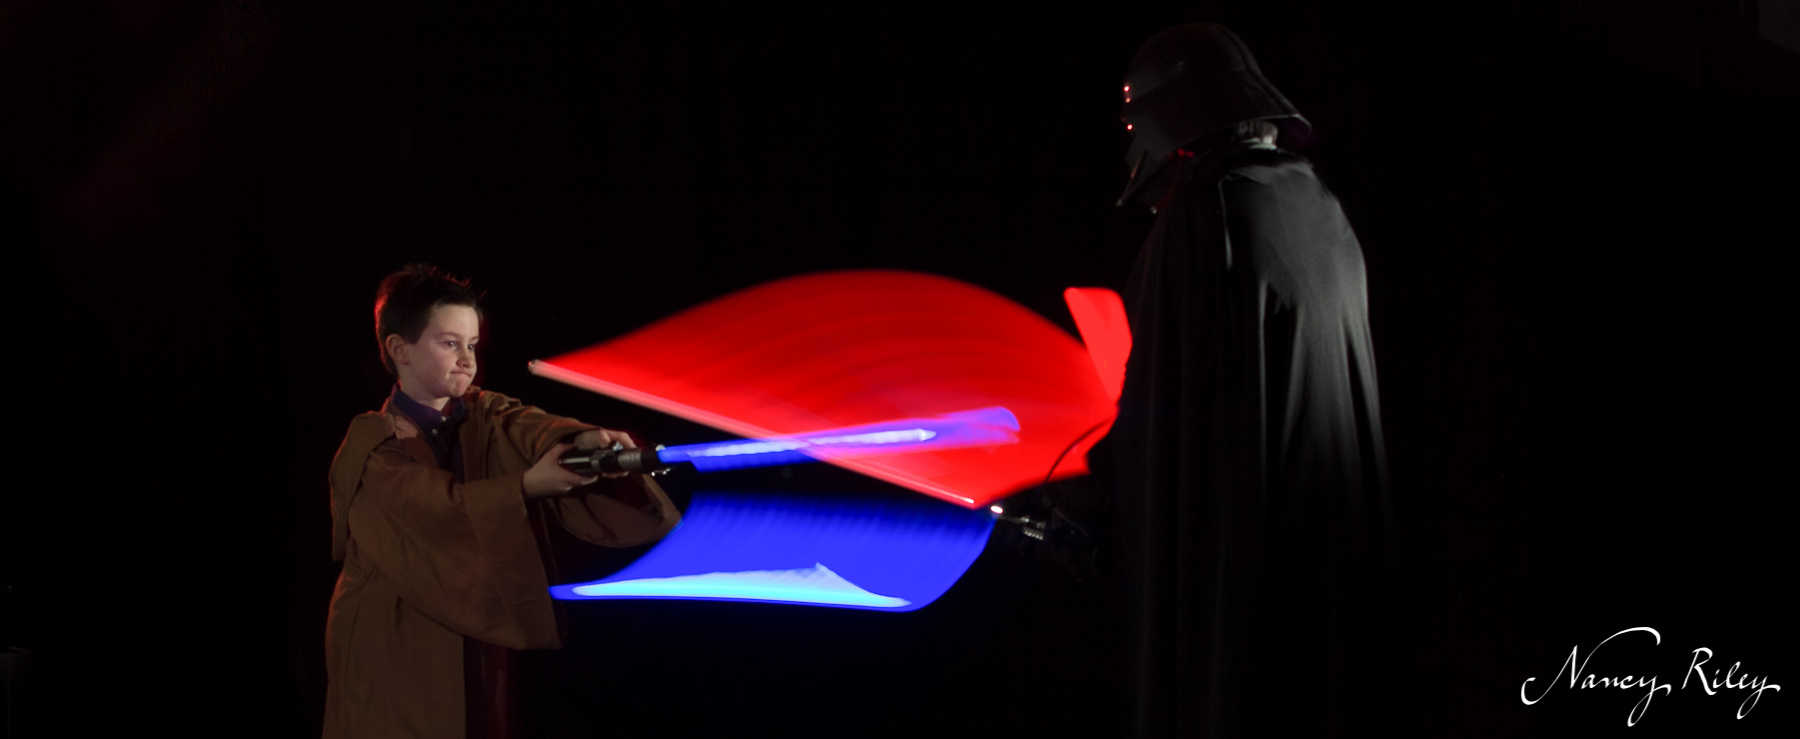 Lightsabers in the dark